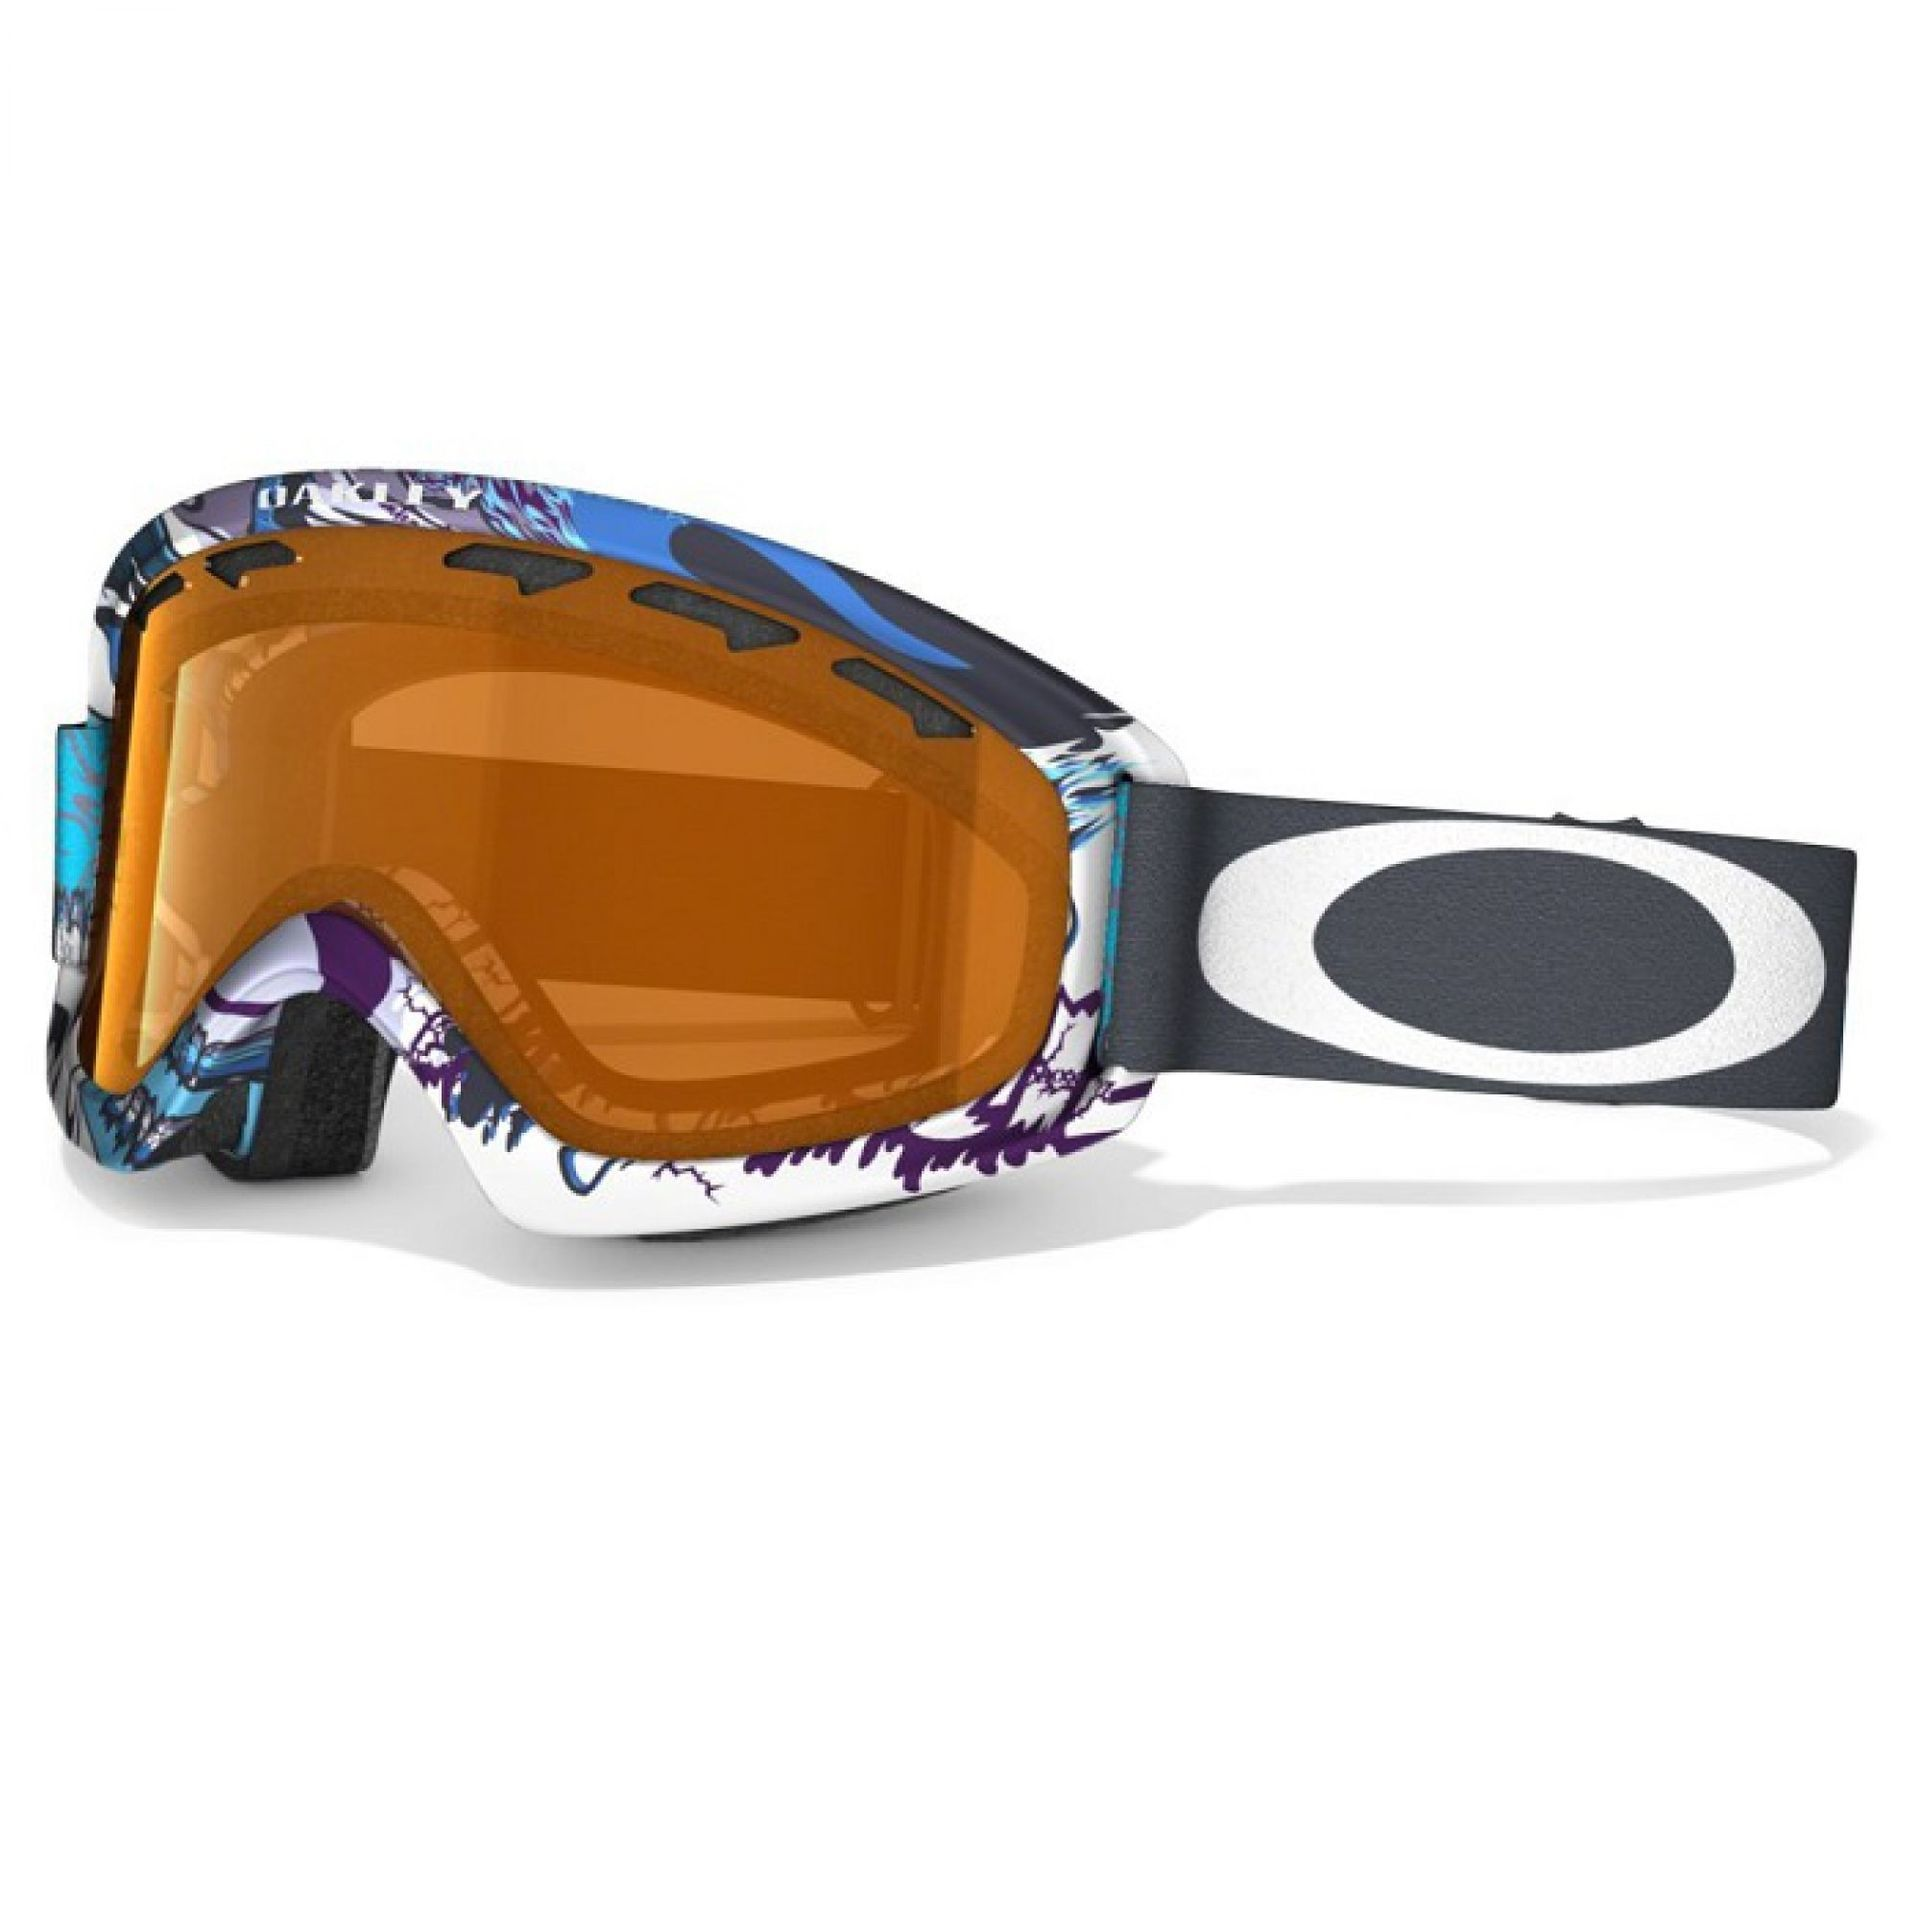 OAKLEY O2 XS MOUTAIN MONSTER TURQUOISE PERSIMMON